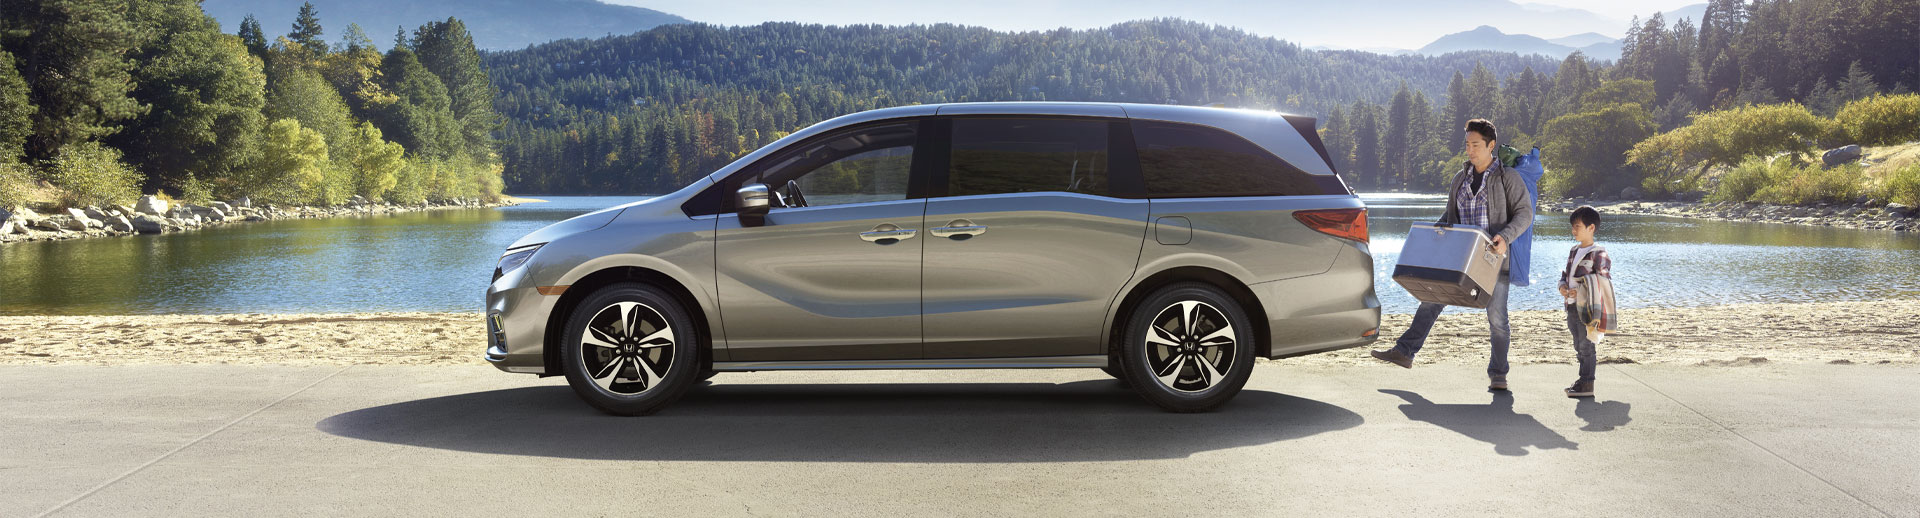 2020 Honda Odyssey Lifestyle Photo